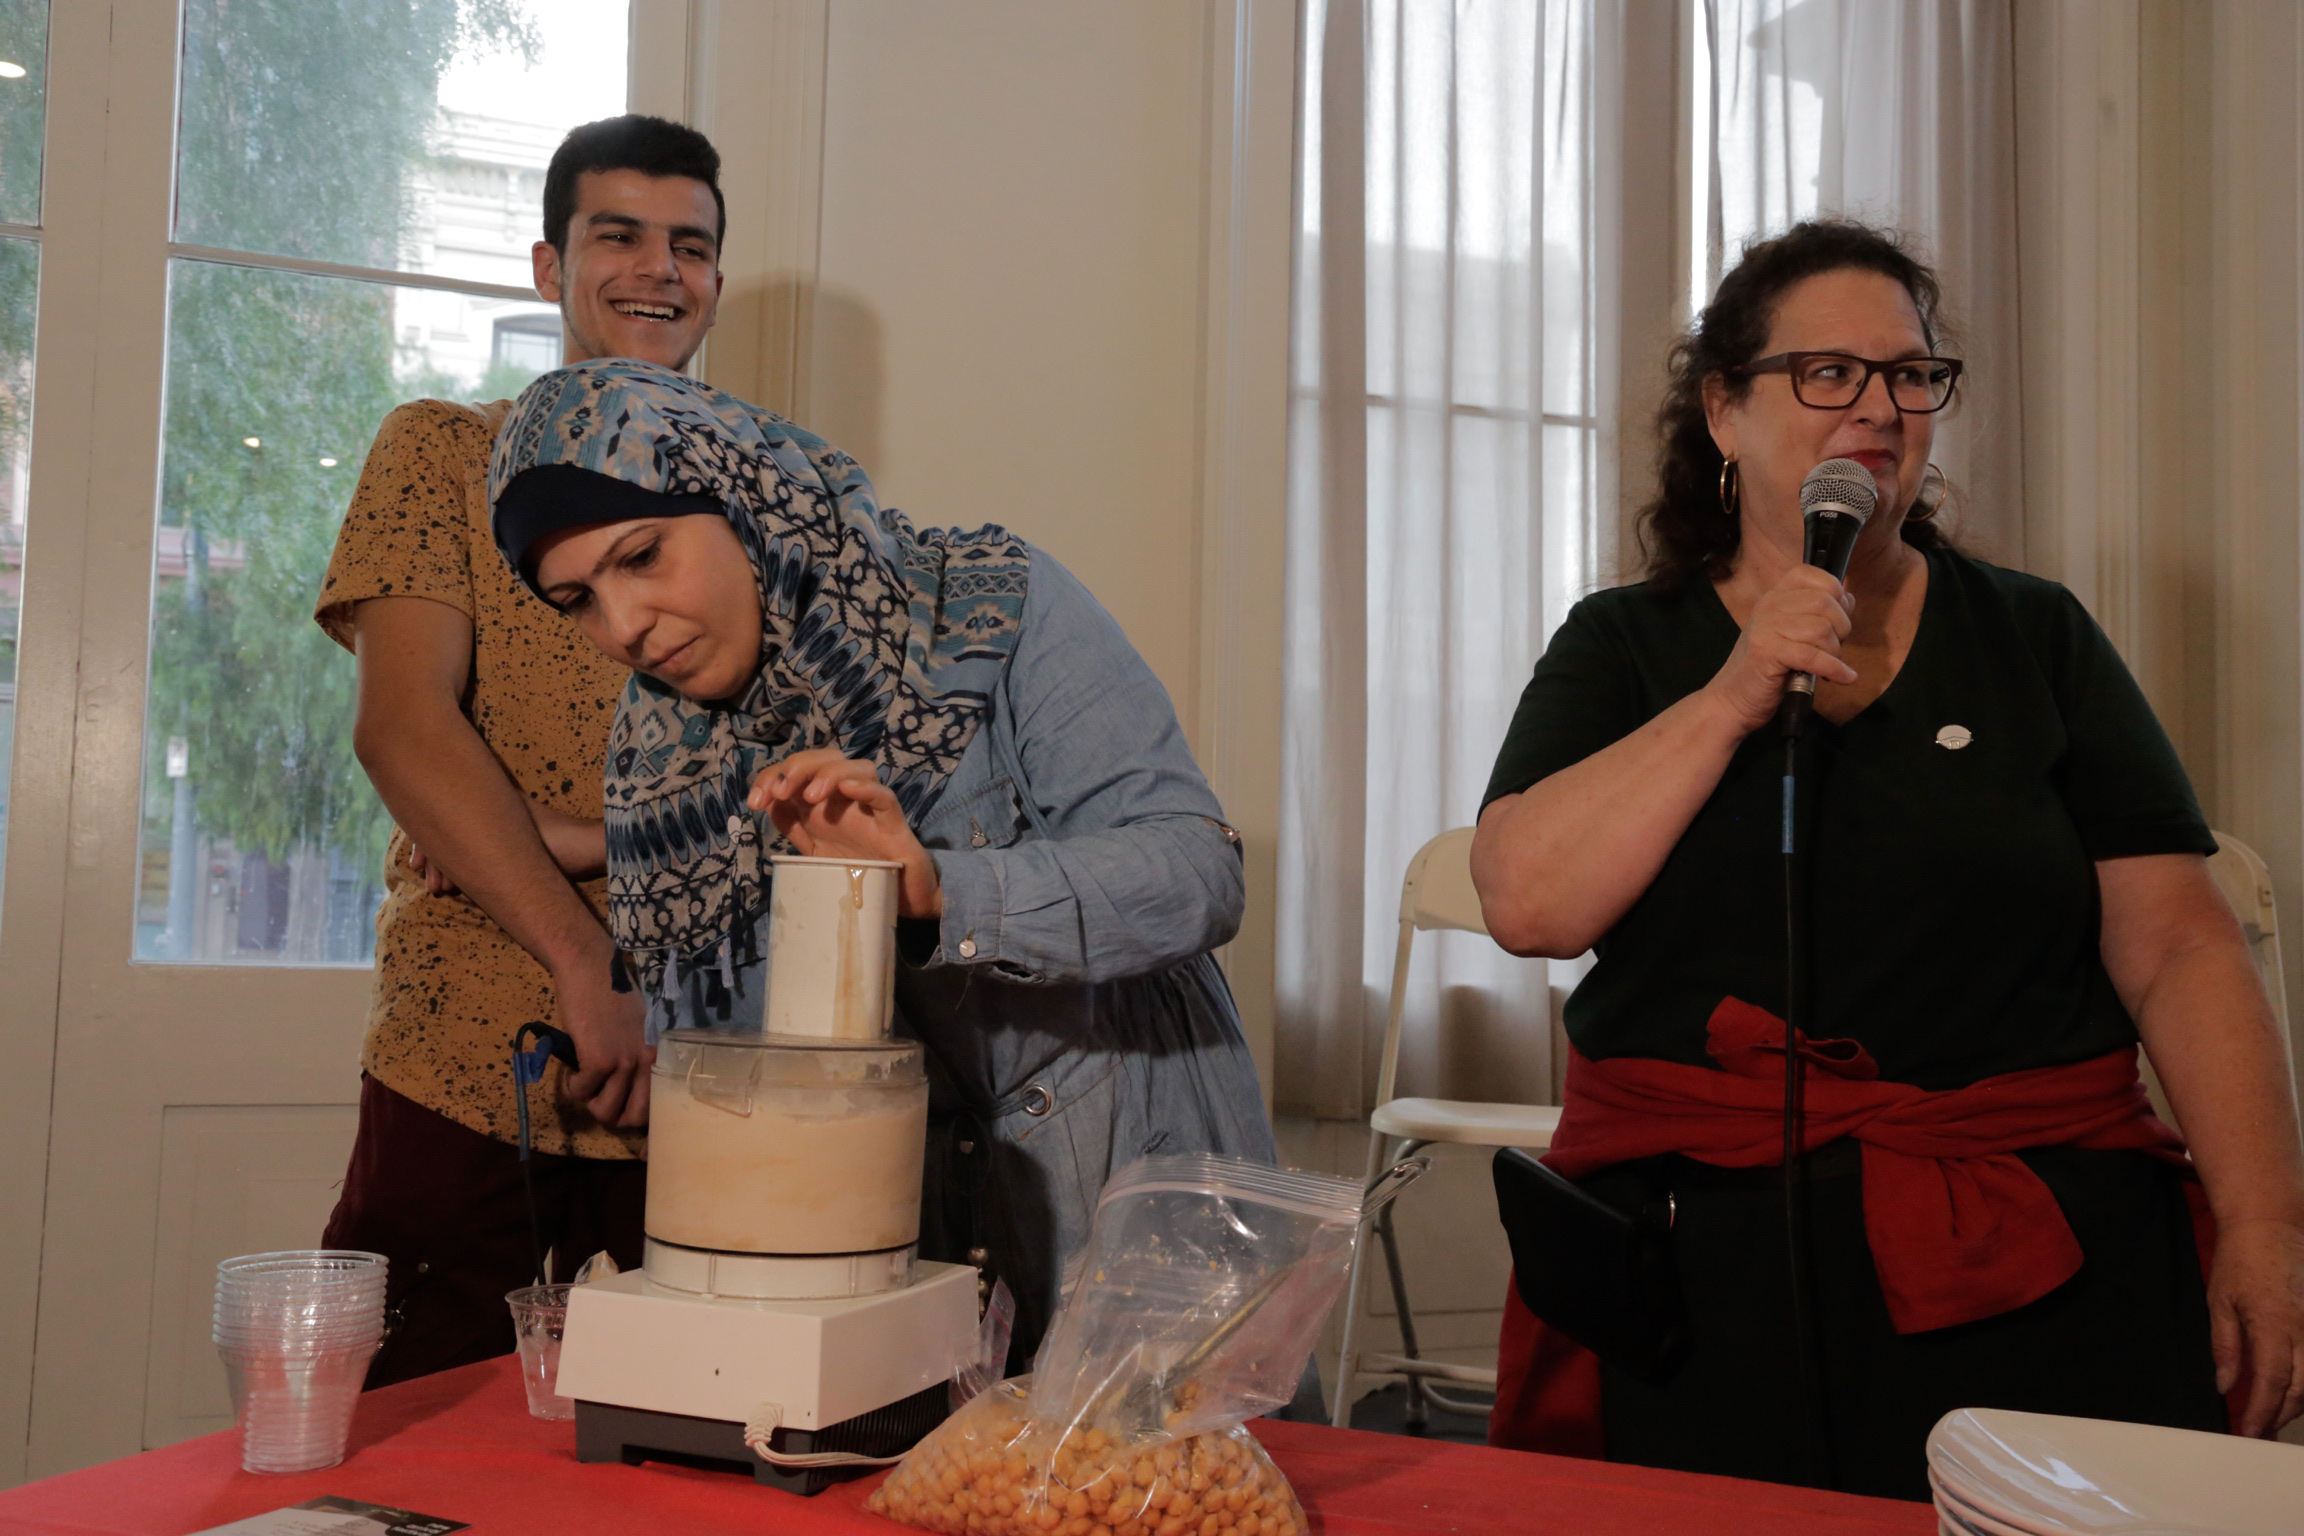 A Syrian Passover-themed meal prepared by Abeer, new Angeleno from Syria and Evan Kleiman of KCRW's Good Food